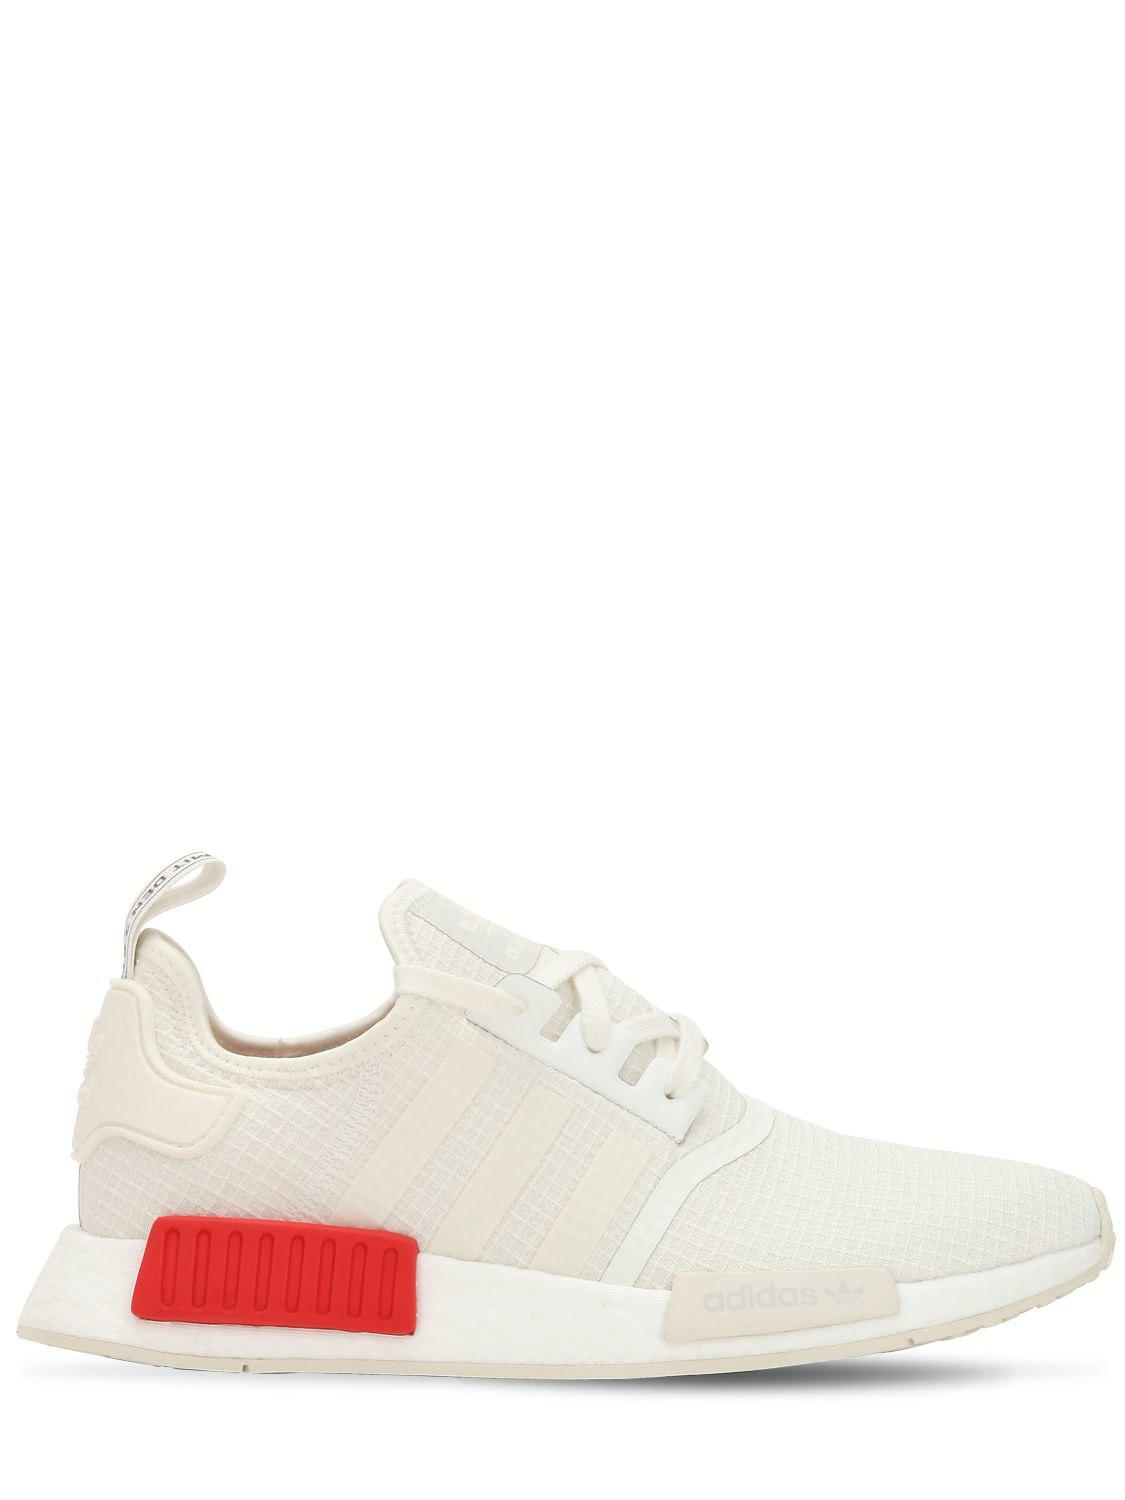 Adidas Originals Nmd R1 Sneakers in White for Men - Lyst 1905509f2